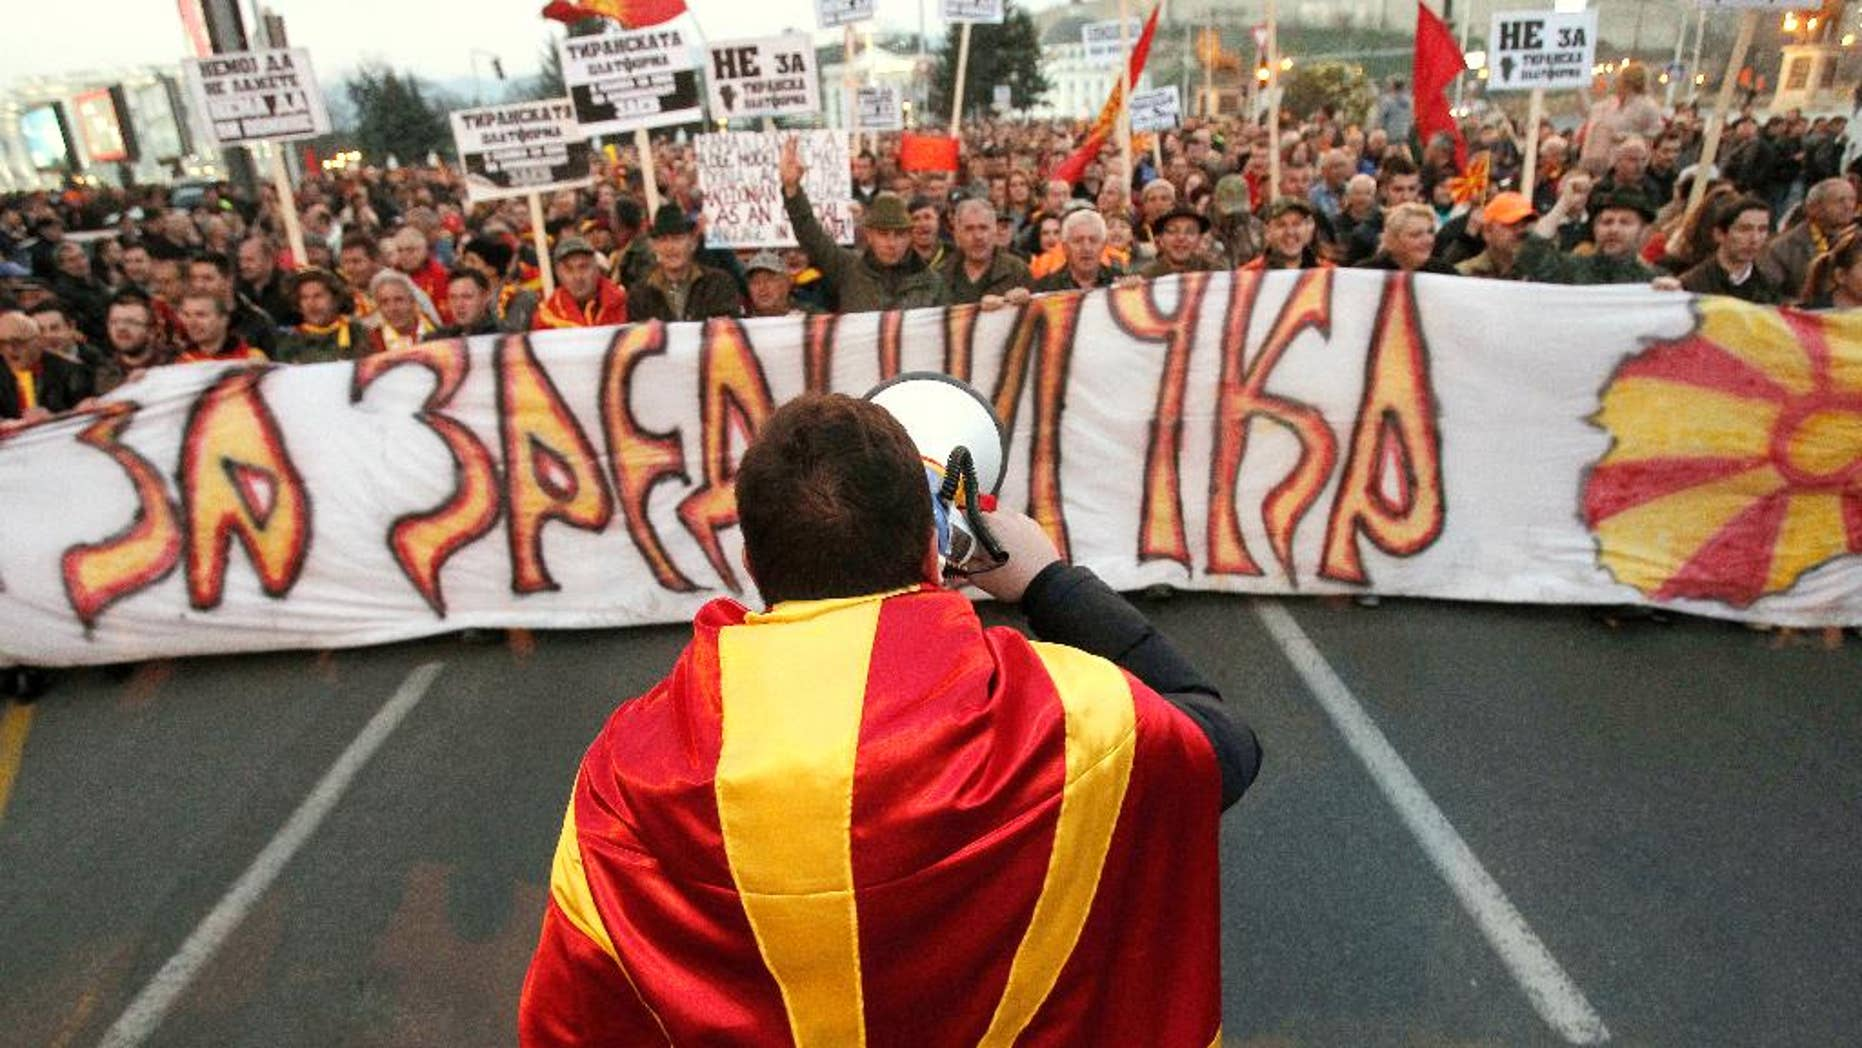 """A man wrapped in a Macedonian flag leads a protest march through a street in Skopje, Macedonia, Thursday, March 16, 2017. Thousands of Macedonians protested peacefully for a third week in the capital Skopje and other cities, against the designation of Albanian as a second official language nationwide. The banner reads in Macedonian """"For Common Macedonia"""". (AP Photo/Boris Grdanoski)"""